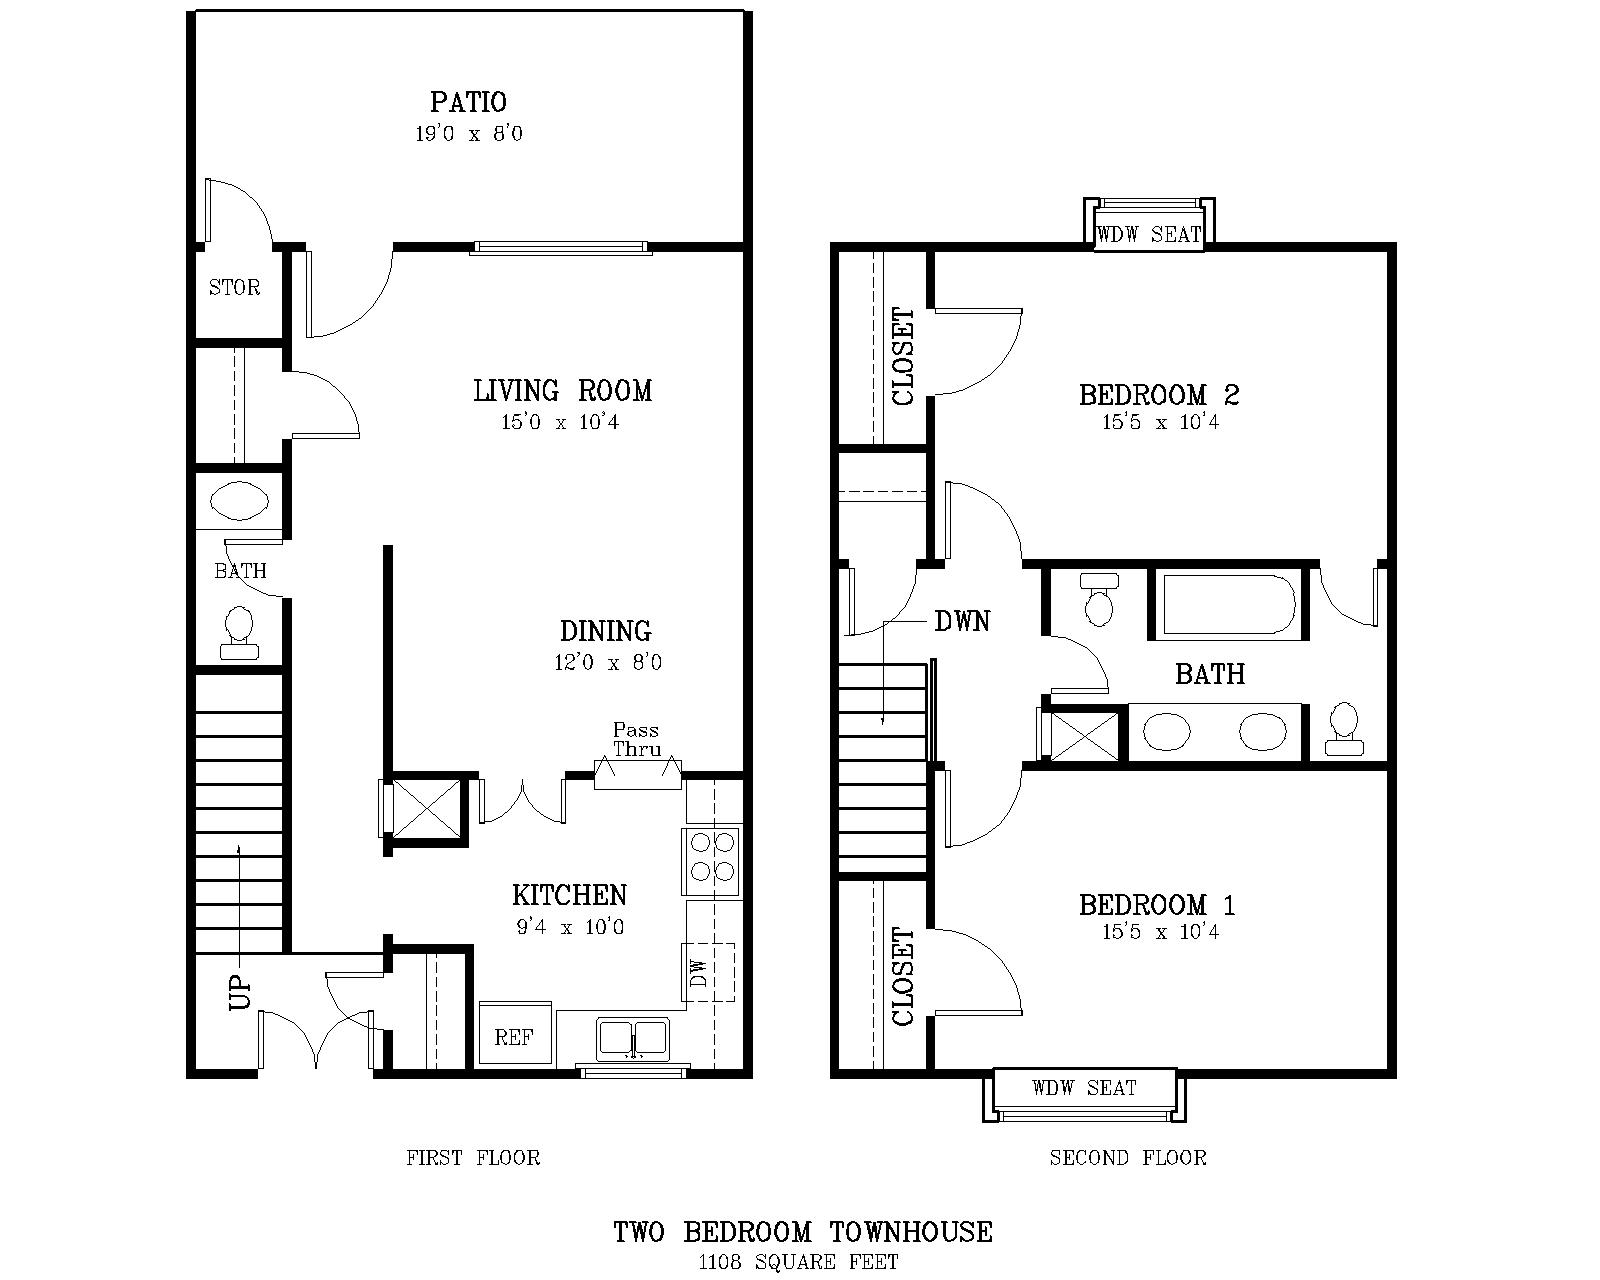 The Courtyard - Two Bedroom Townhome on floor plans with doors, floor plans with walls, floor plans with stairs, floor plans with conservatories, floor plans with laundry rooms, floor plans with windows, floor plans with elevators, floor plans with stables, floor plans with hallways, floor plans with atriums, floor plans with columns, floor plans with basements, floor plans with patios, floor plans with landscaping, floor plans with gardens, floor plans with foyers, floor plans with staircases, floor plans with verandas, floor plans with breezeways, floor plans with halls,